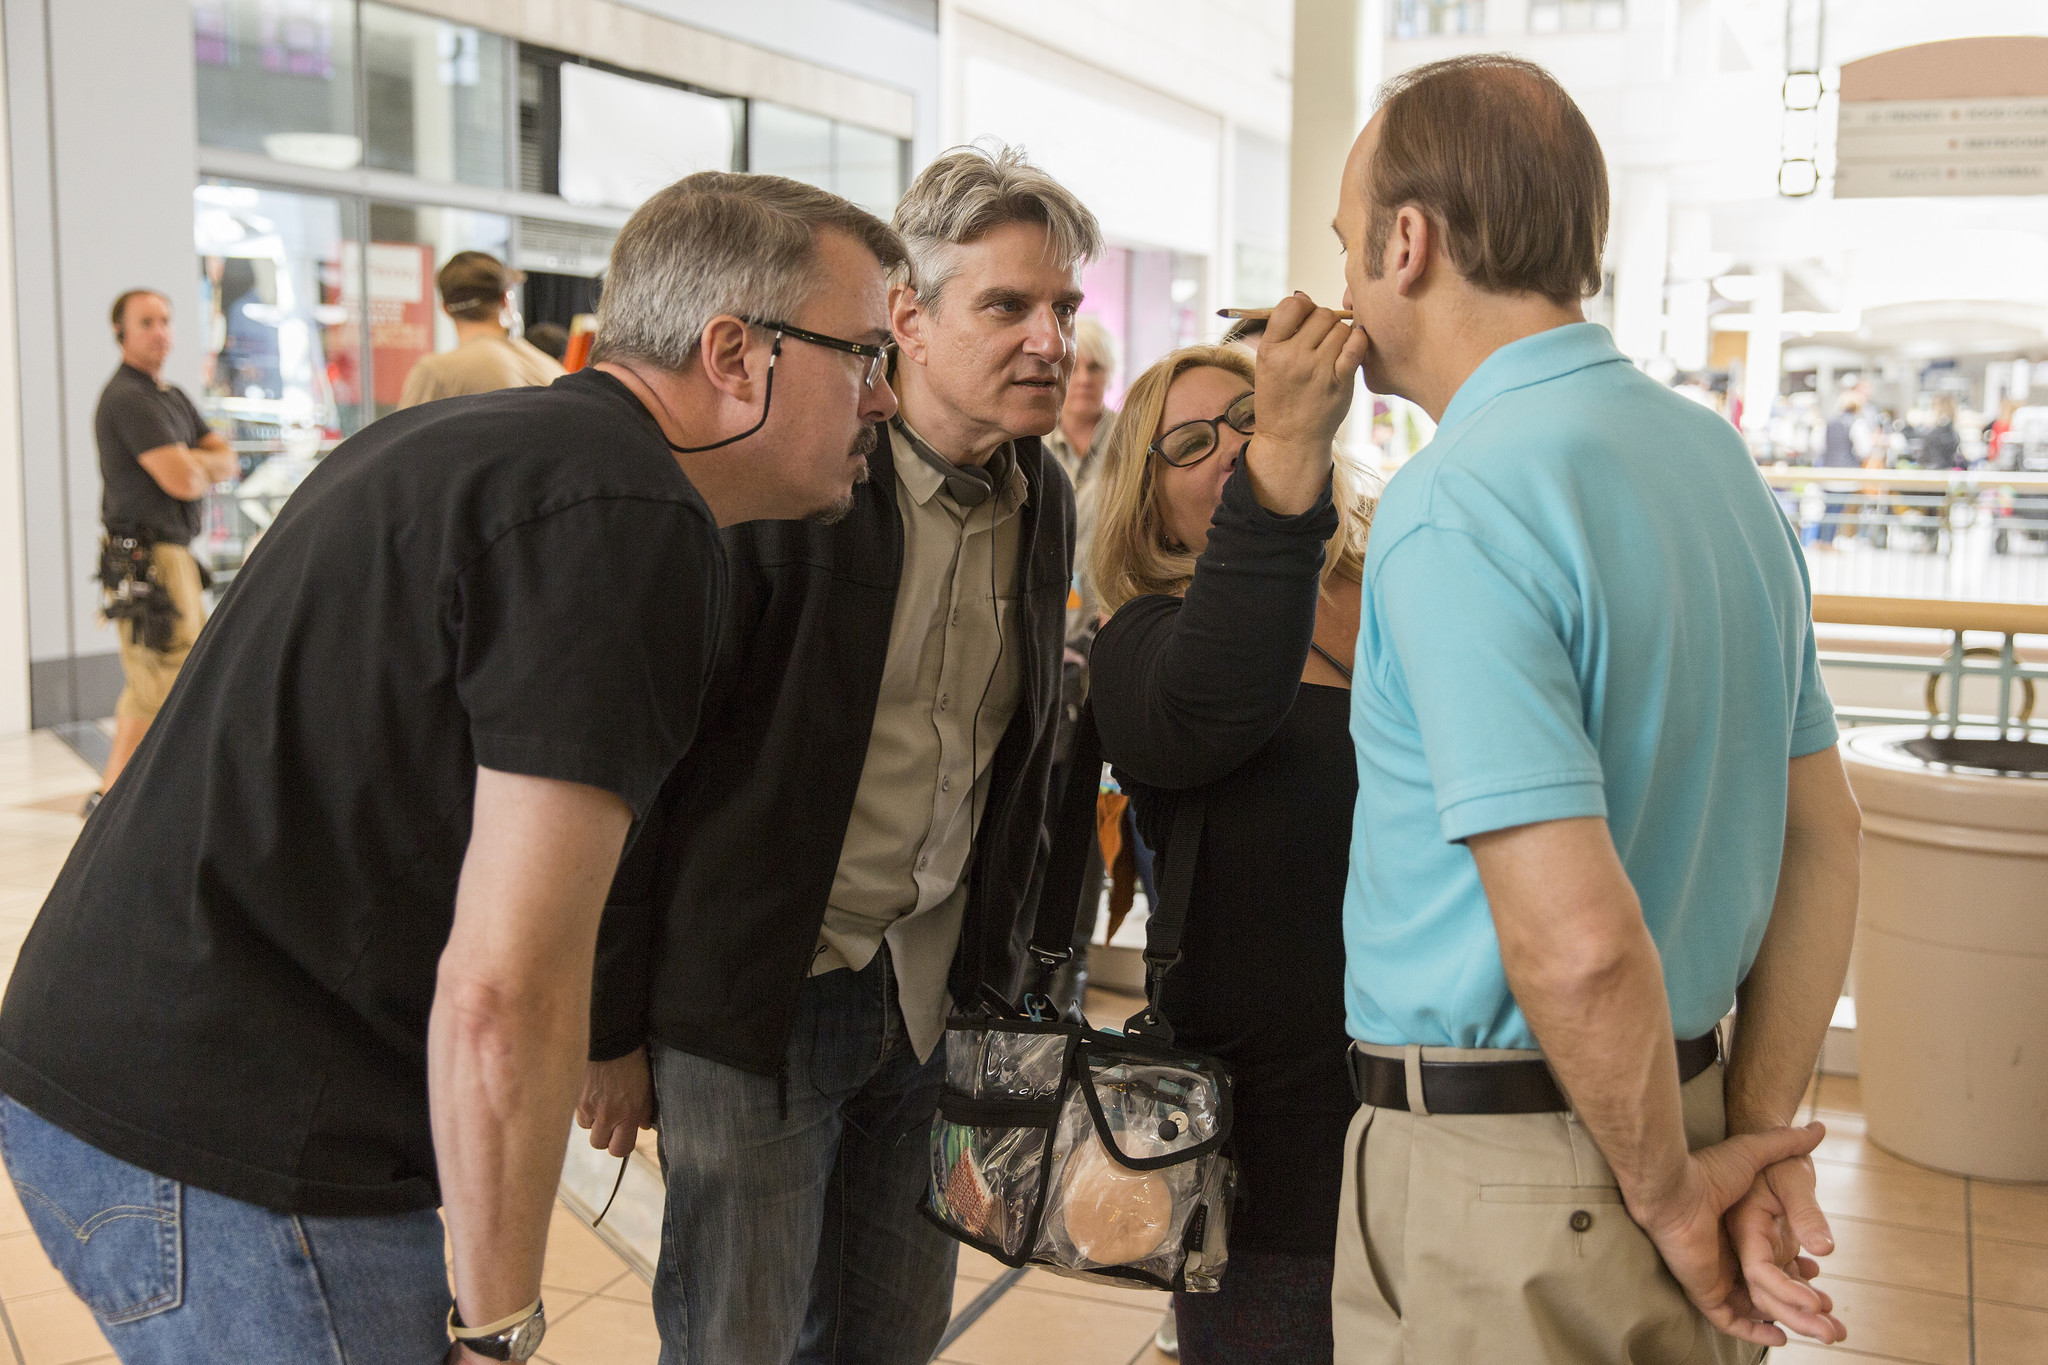 """Showrunners Vince Gilligan, from left, and Peter Gould watch a makeup artist at work on the set of """"Better Call Saul."""" (AMC / Sony Pictures Television)"""